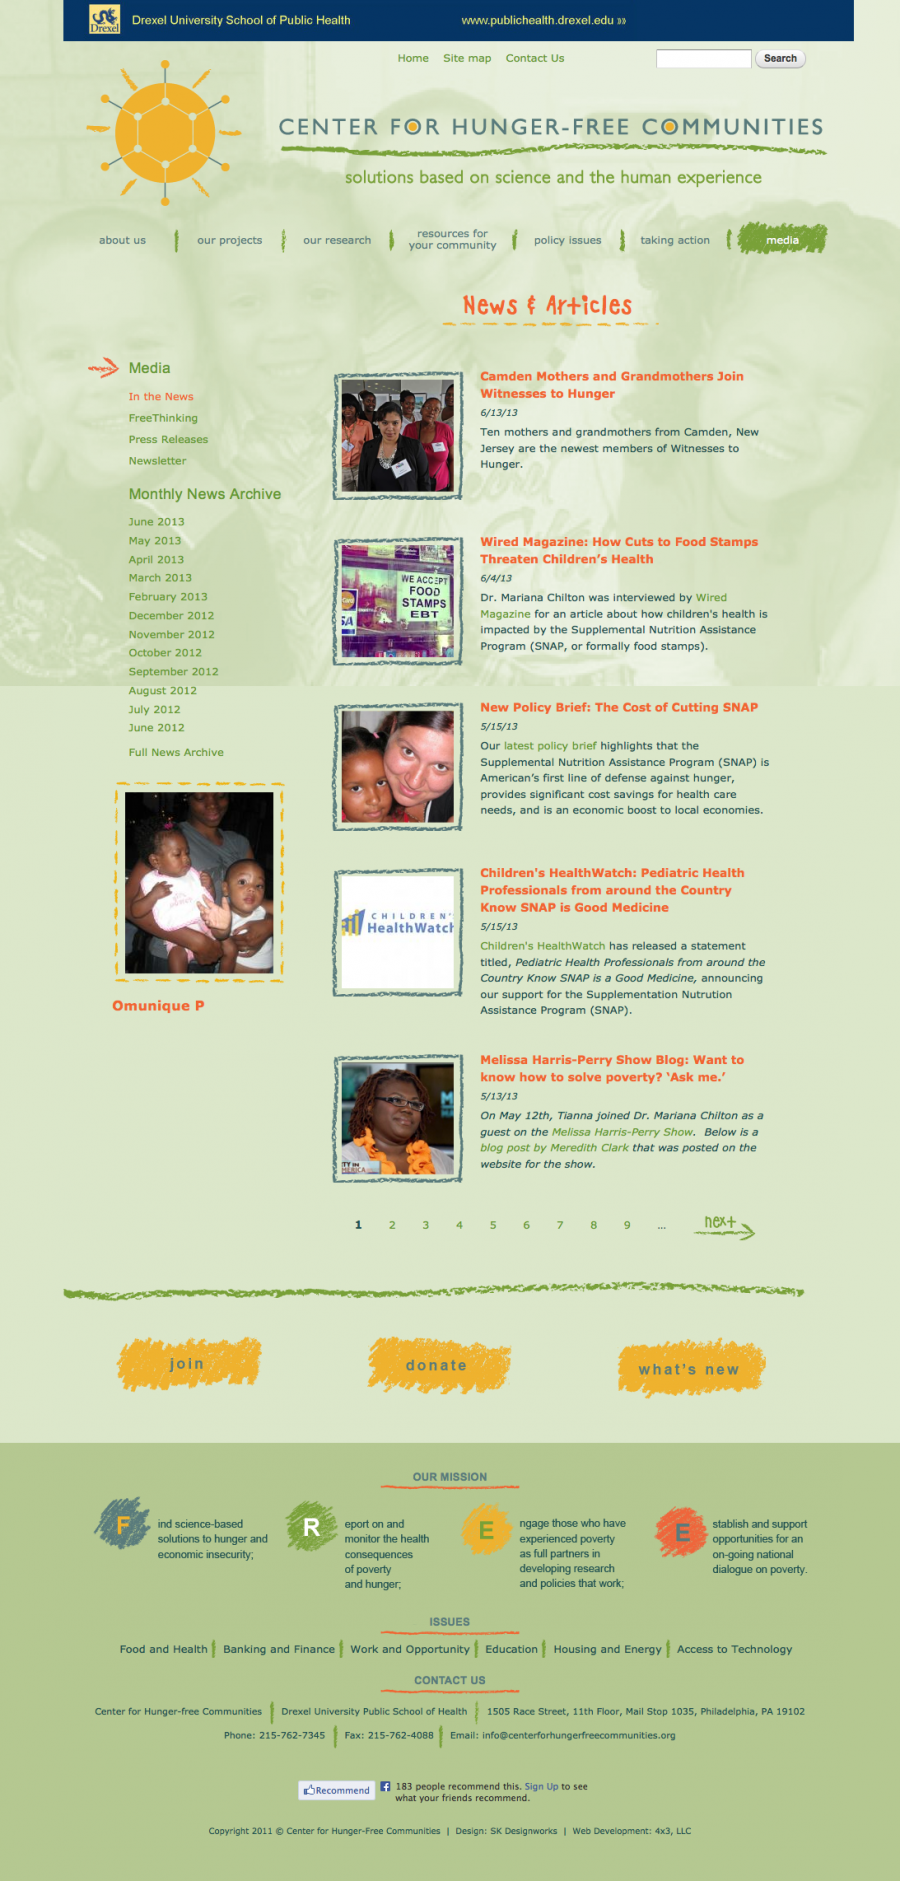 The Center for Hunger-Free Communities, upload new content, post news items, or add new media